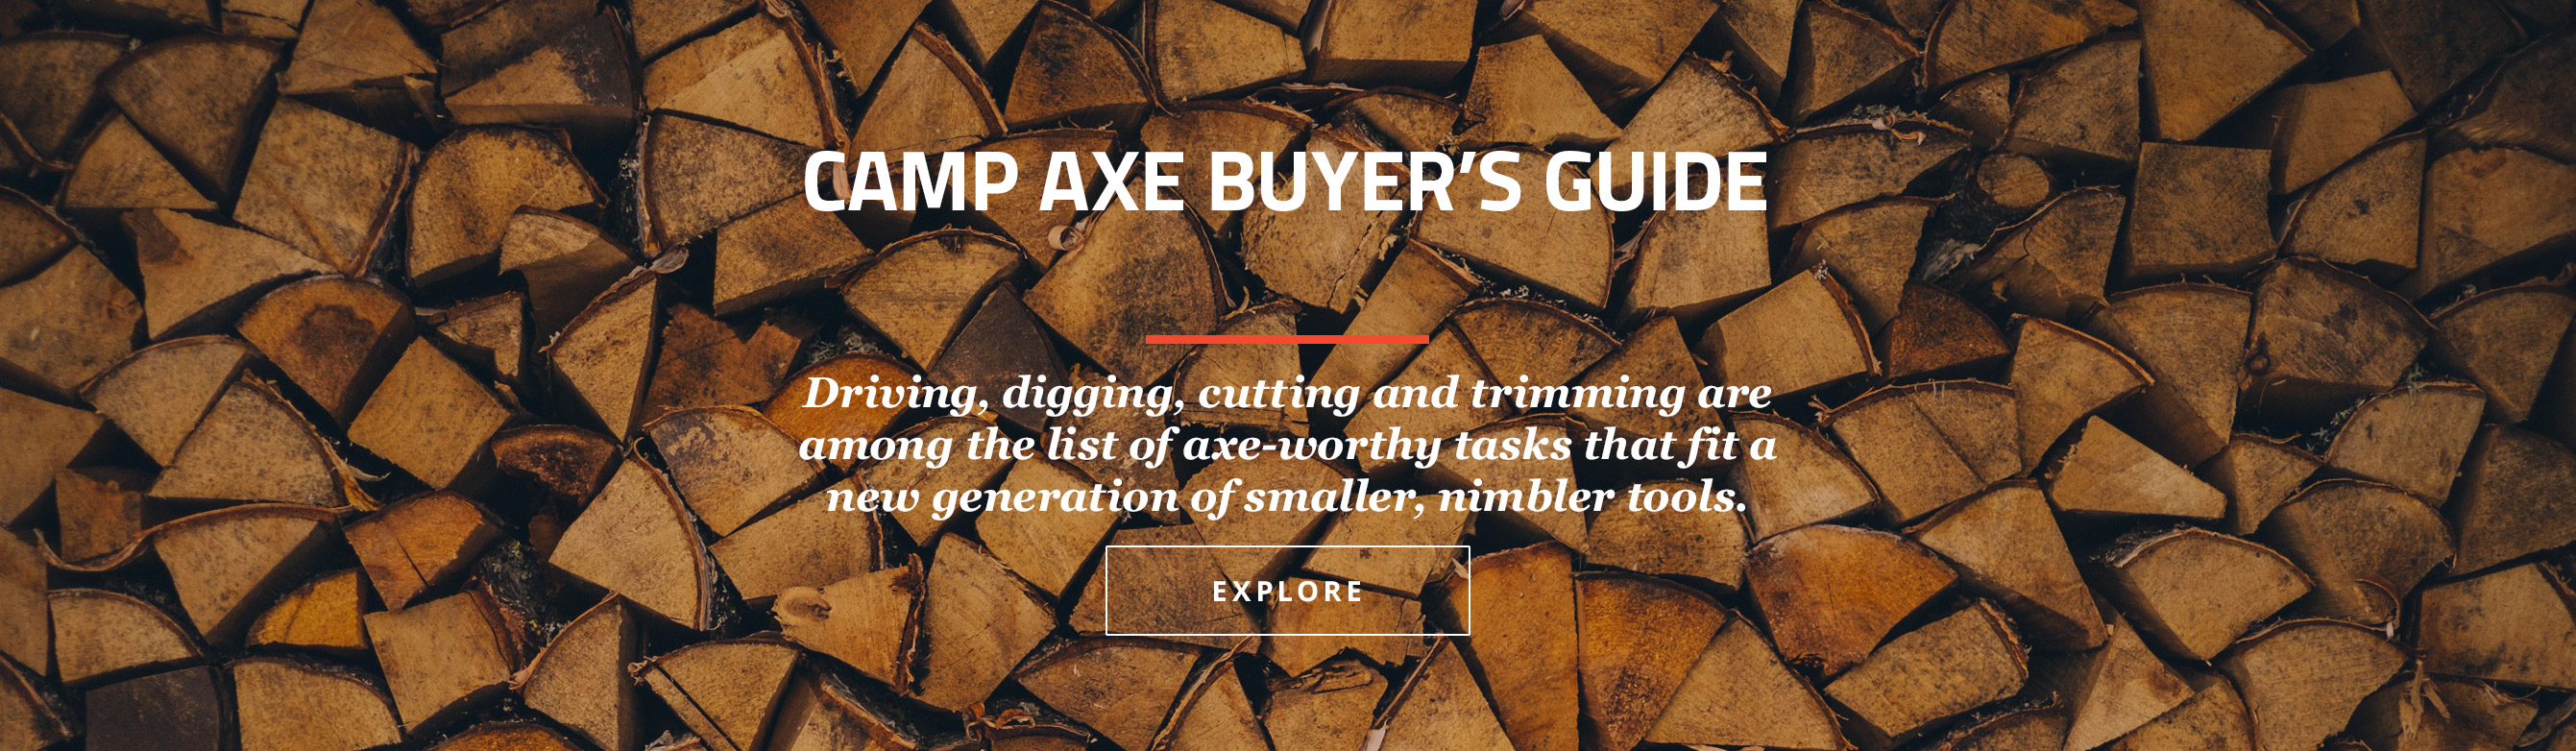 Camp Axe Buyer's Guide